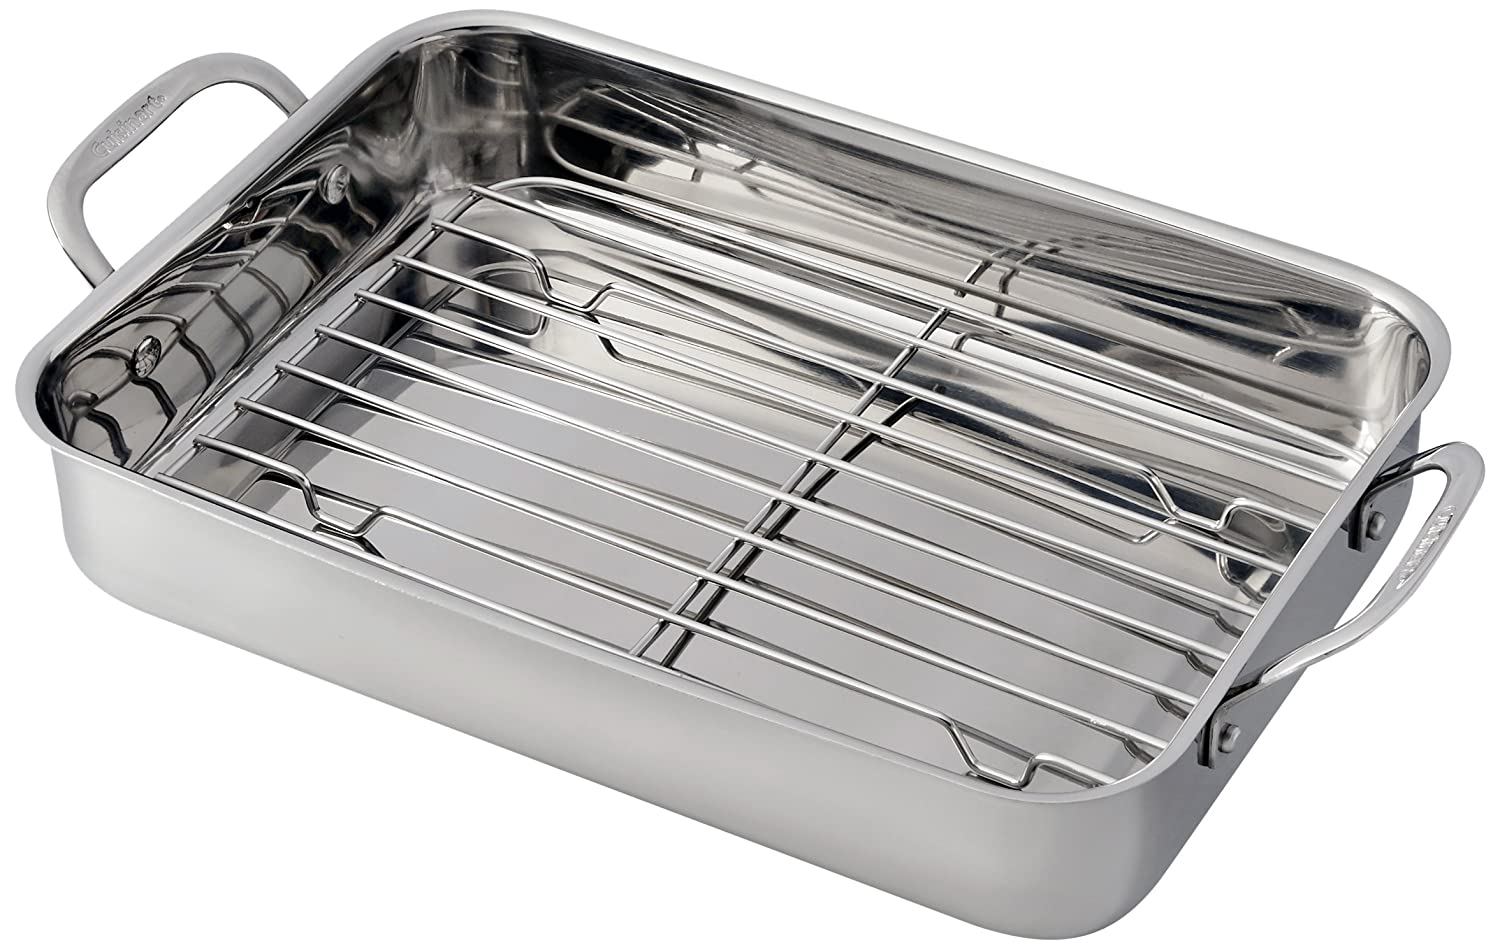 Cuisinart 7117-14RR Chef's 14-Inch Classic Lasagna Pan with Stainless Roasting Rack